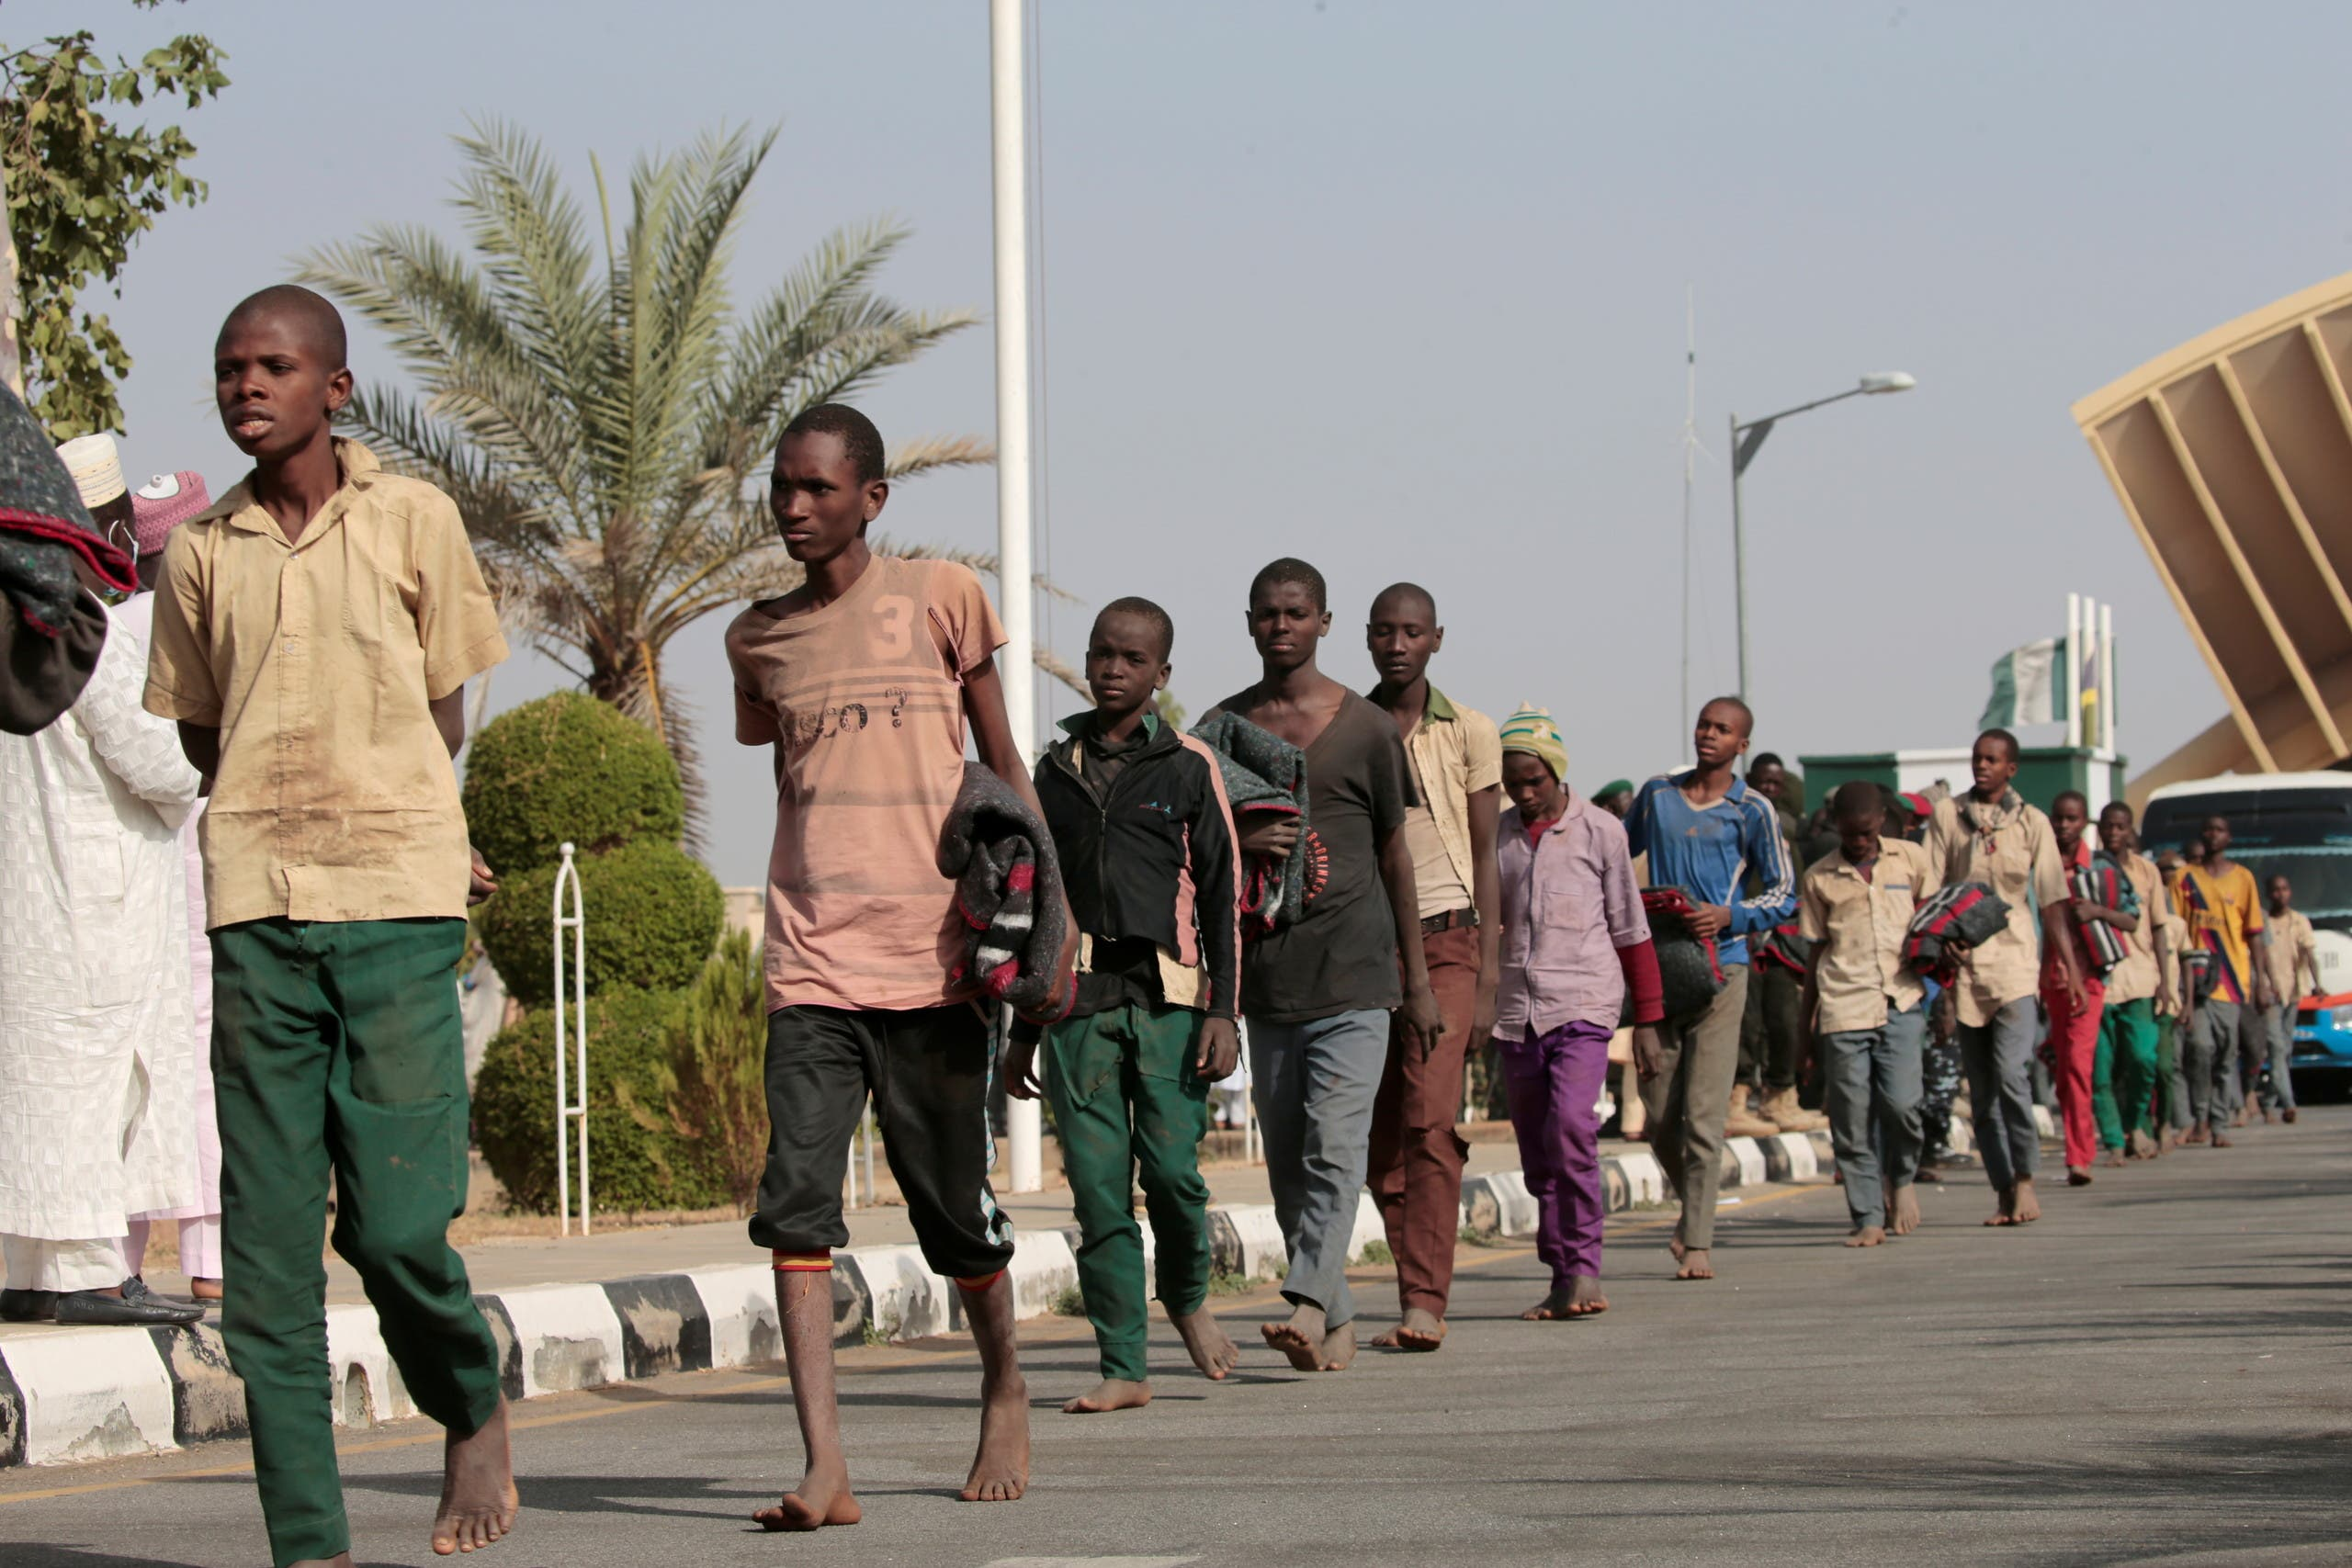 Freed Nigerian schoolboys walk after they were rescued by security forces in Katsina, Nigeria, on December 18, 2020. (Reuters)